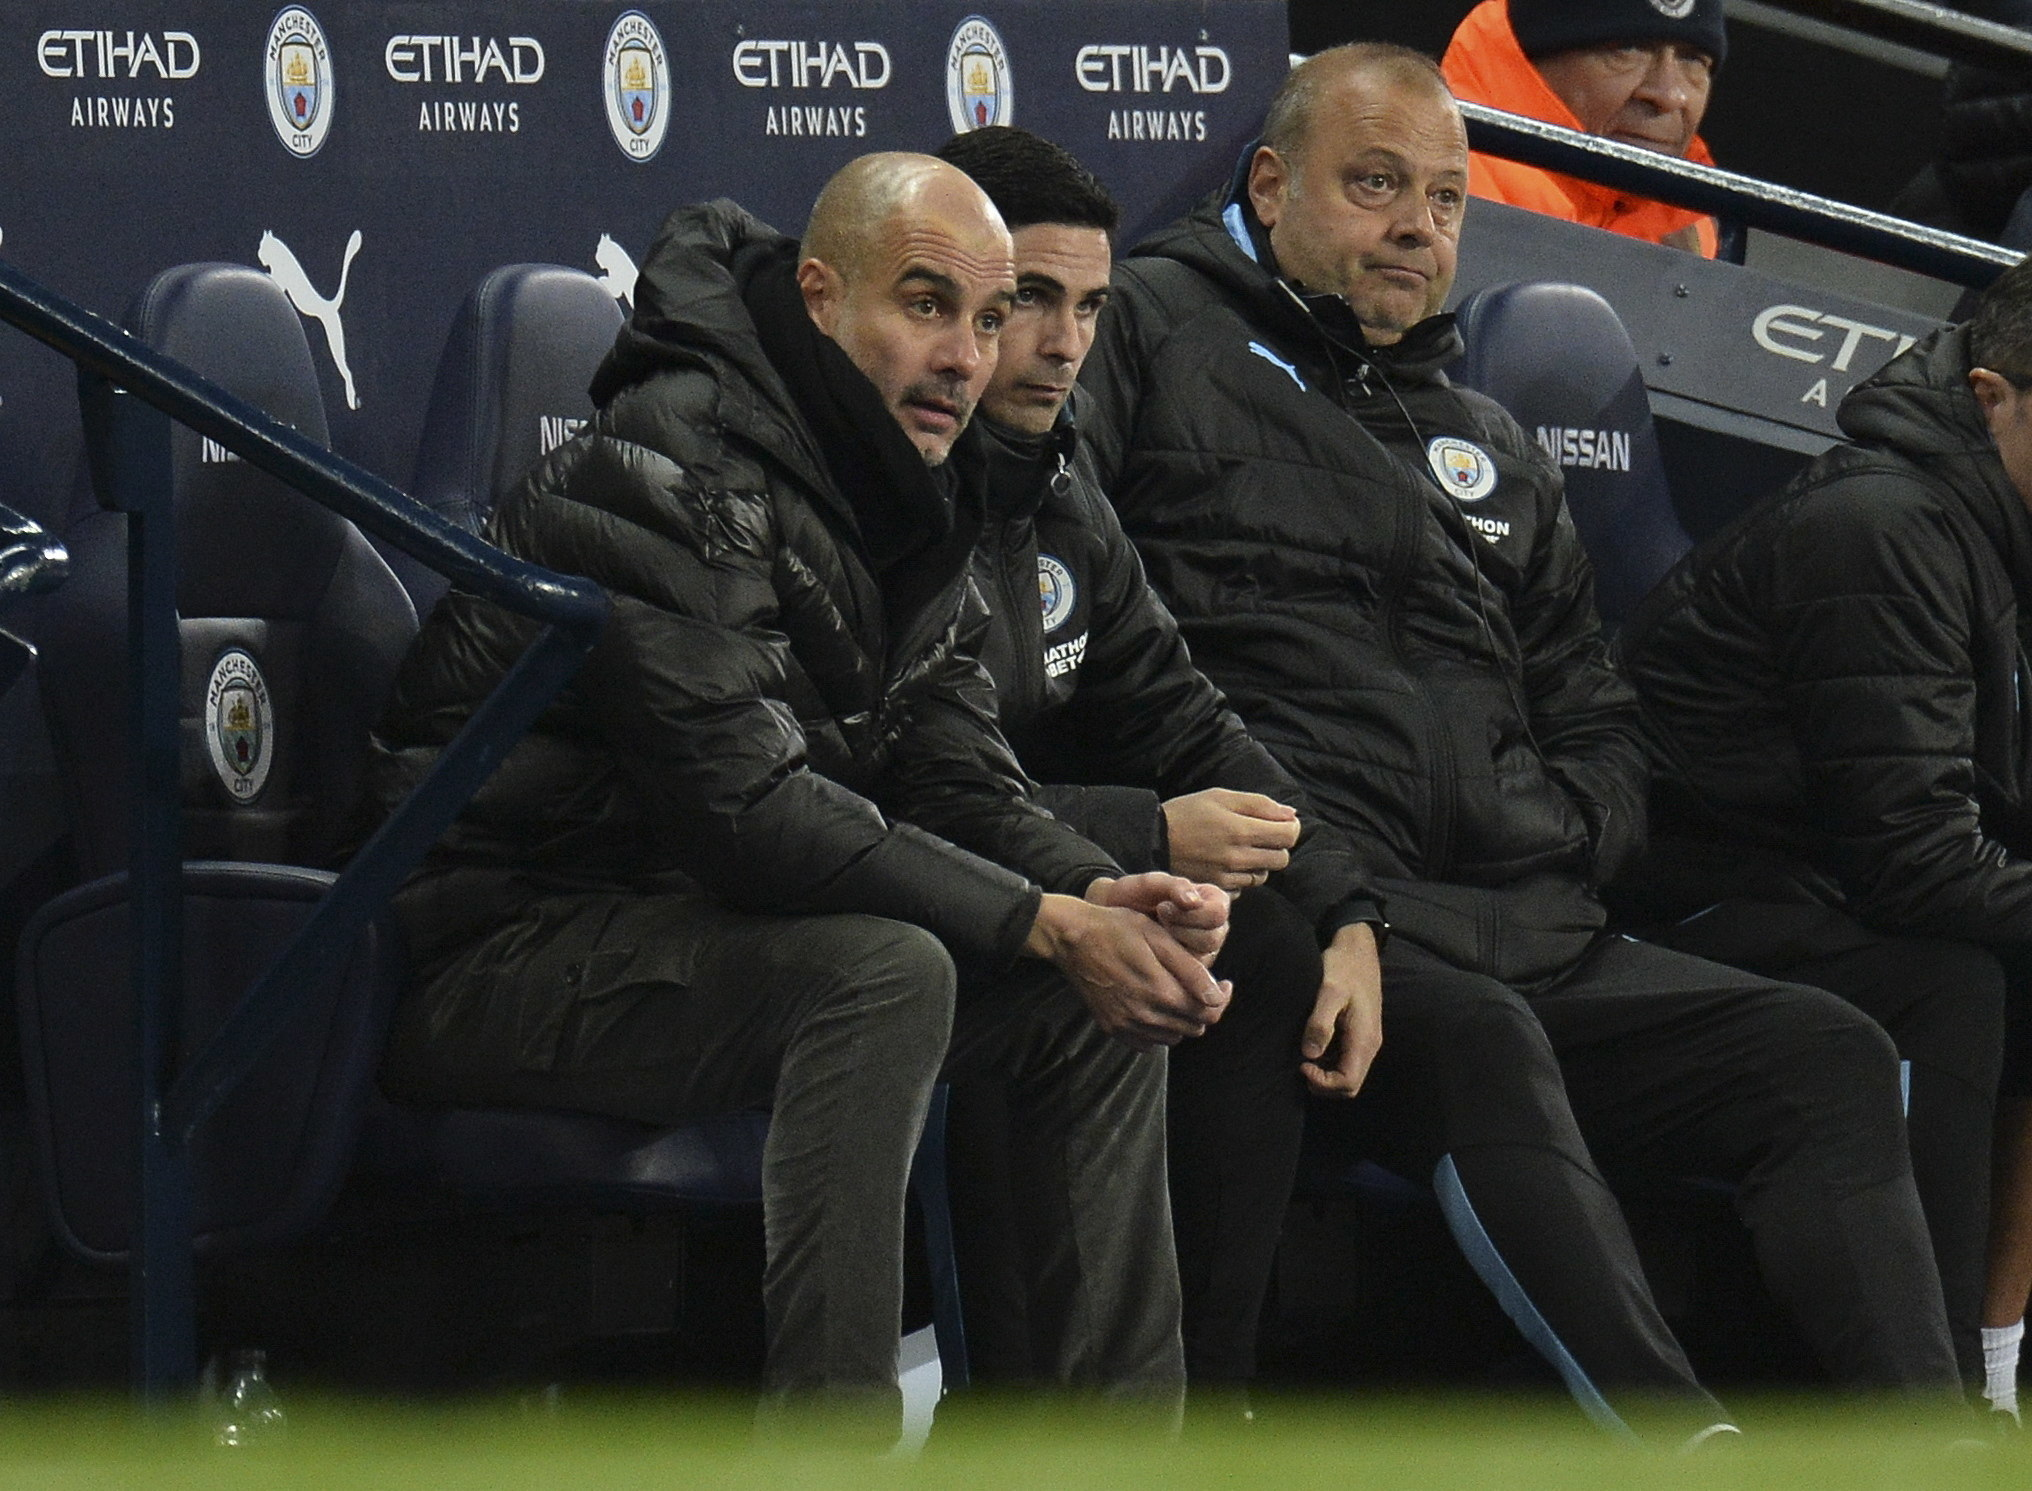 <HIT>Manchester</HIT> (<HIT>United</HIT> Kingdom), 07/12/2019.- <HIT>Manchester</HIT> Citys manager Pep Guardiola (L) reacts during the English Premier League soccer match between <HIT>Manchester</HIT><HIT>United</HIT> and <HIT>Manchester</HIT> City held at the Etihad Stadium, <HIT>Manchester</HIT>, Britain 07 December 2019. (Reino Unido) EFE/EPA/PETER POWELL EDITORIAL USE ONLY. No use with unauthorized audio, video, data, fixture lists, club/league logos or live services. Online in-match use limited to 120 images, no video emulation. No use in betting, games or single club/league/player publications